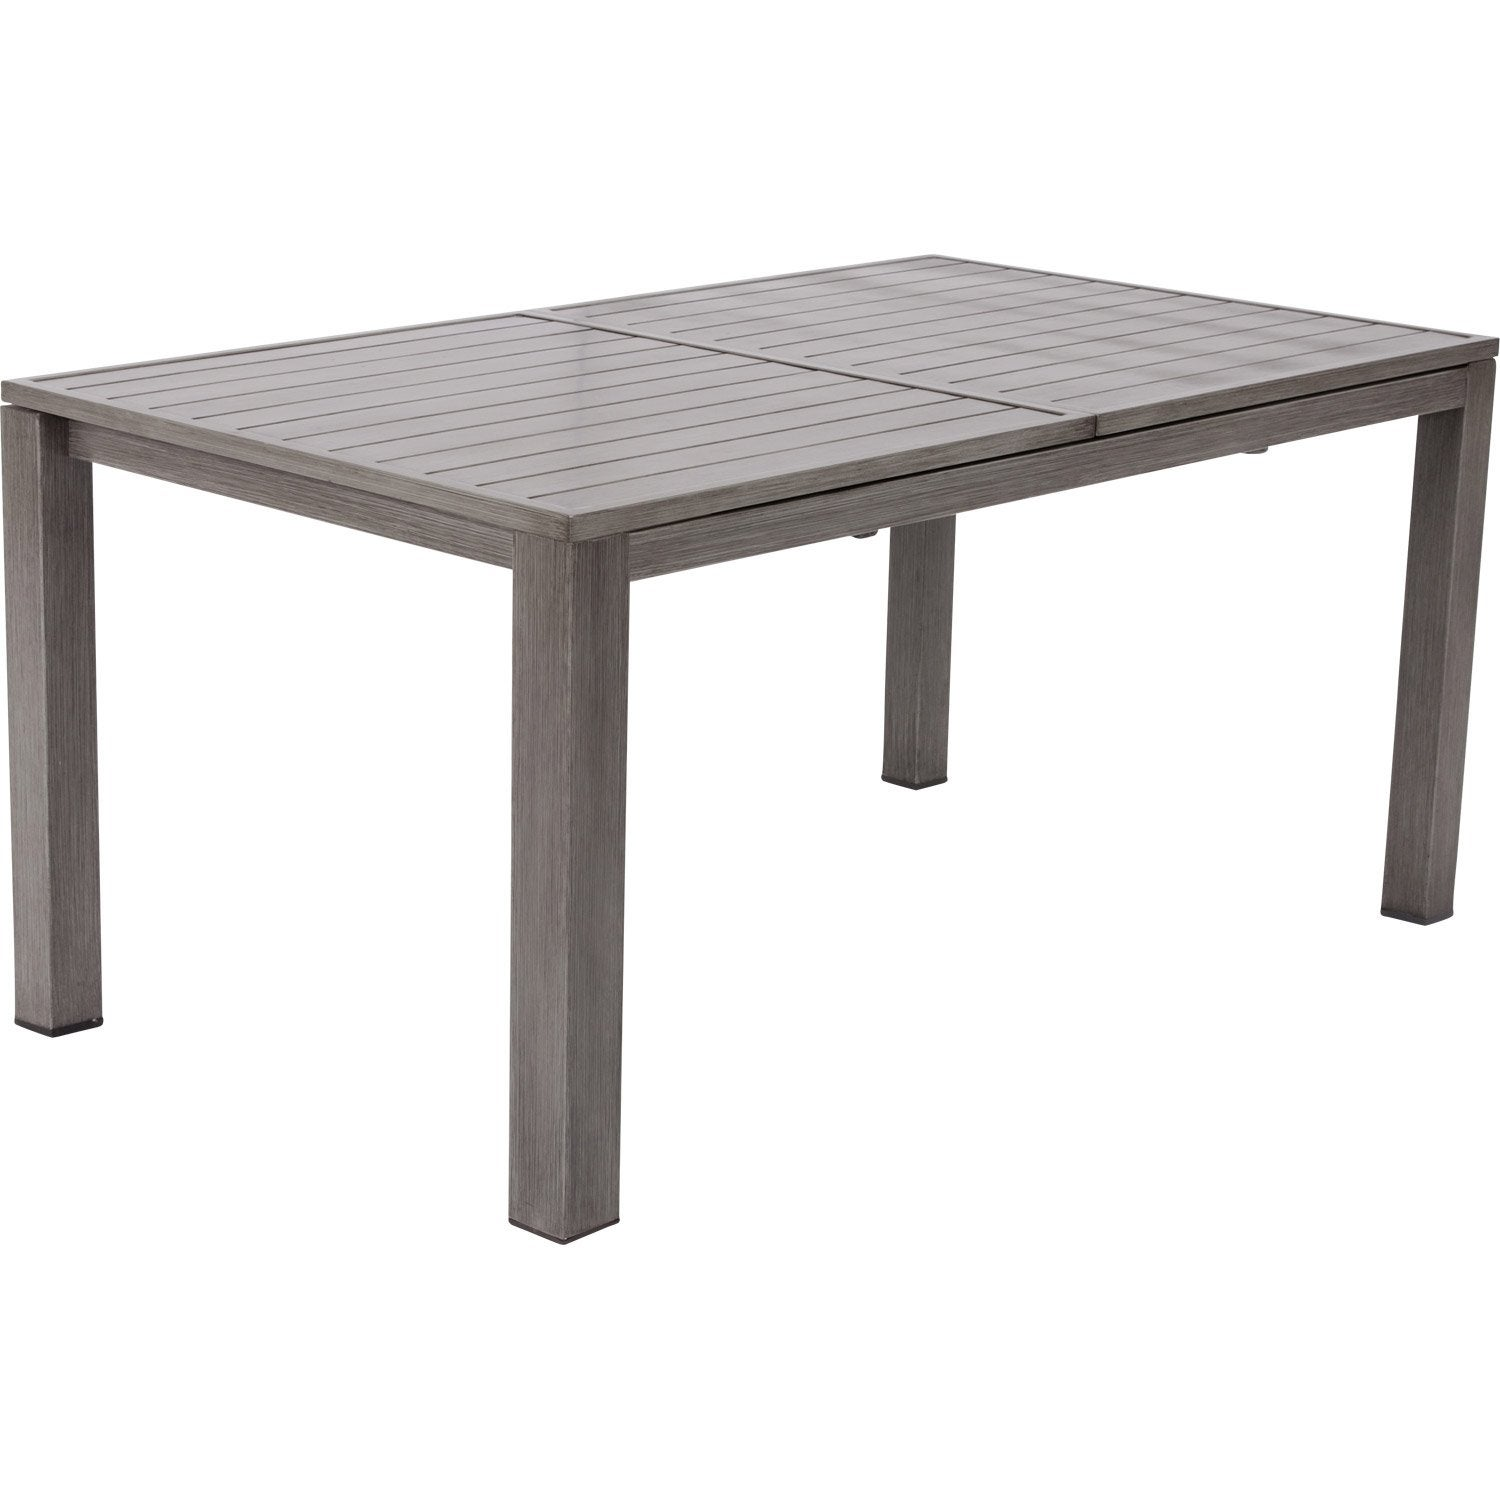 Table de jardin naterial antibes rectangulaire gris look for Table extensible leroy merlin